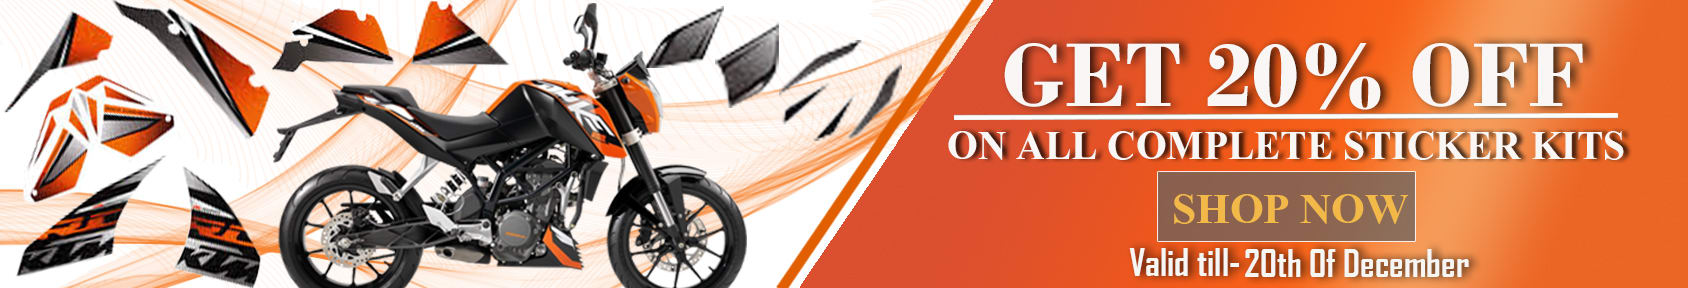 Special offers on Genuine Motorcycle Spare Parts And Accessories - 20% Off at Complete Sticker kit